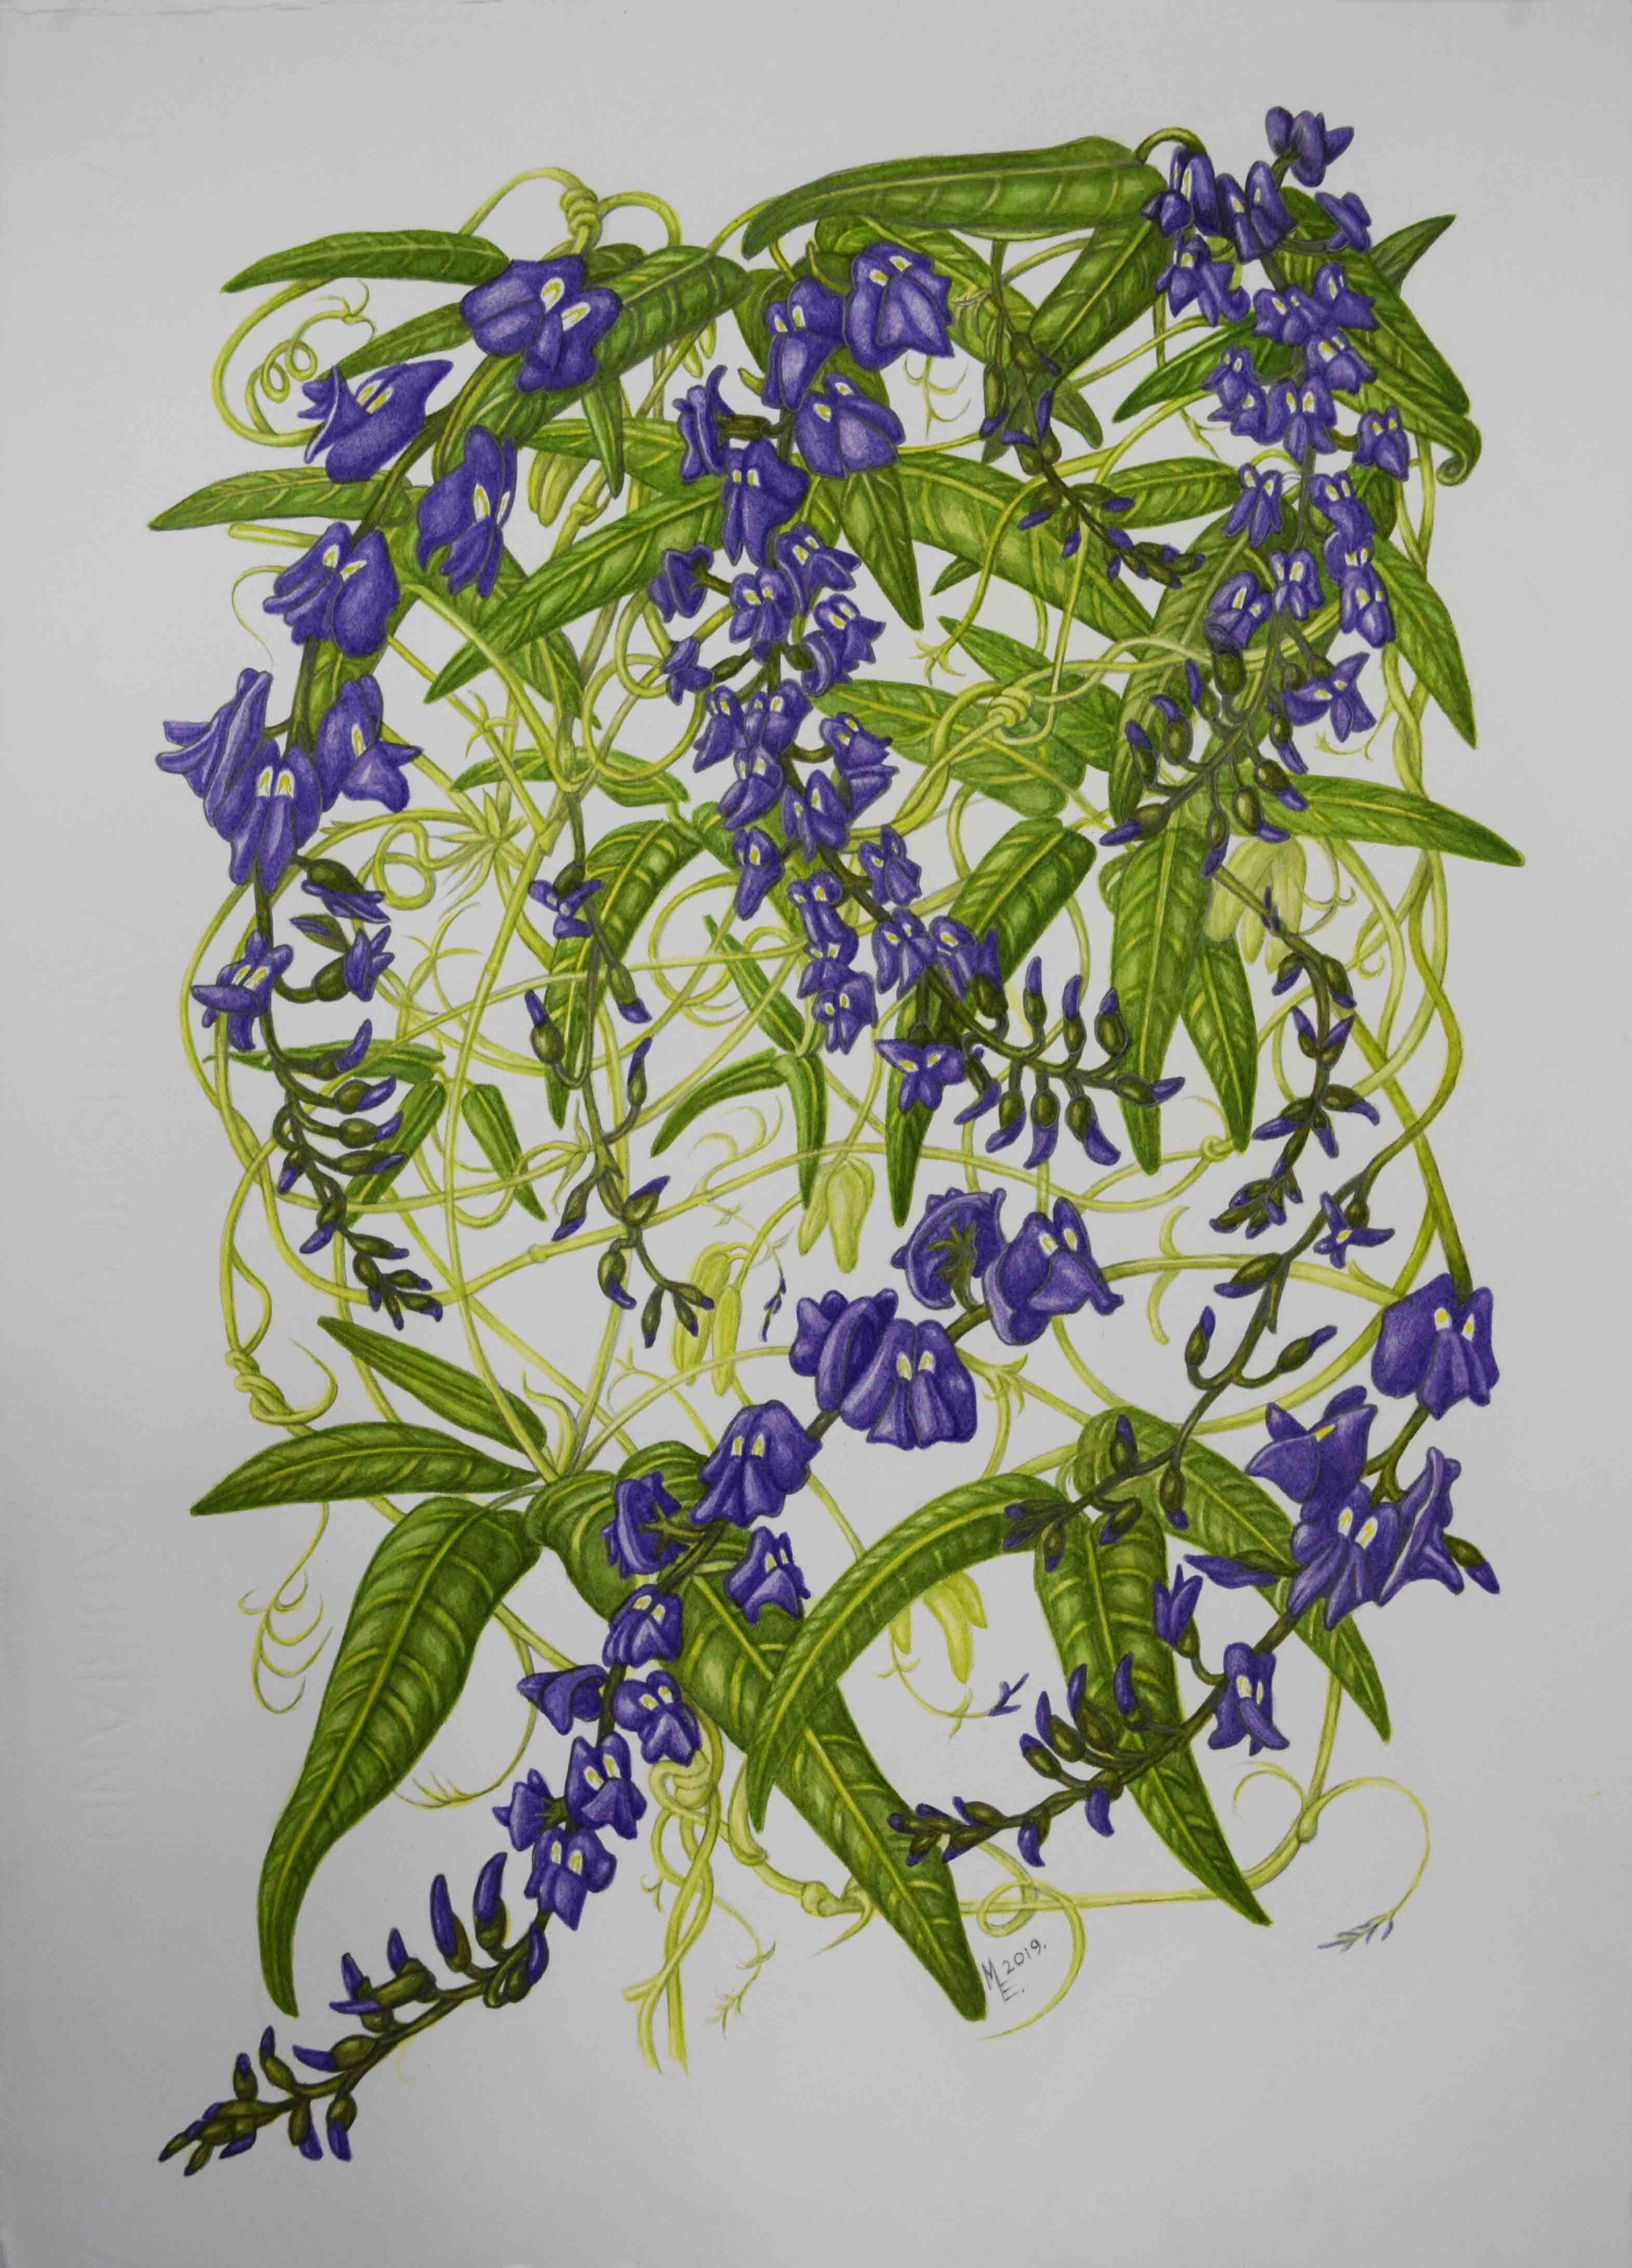 62. Megan Evans, Native Wisteria (Hardenbergia comptoniana), 2019, pencil and watercolour on 185gsm, watercolour paper, 42 x 28 cm $450